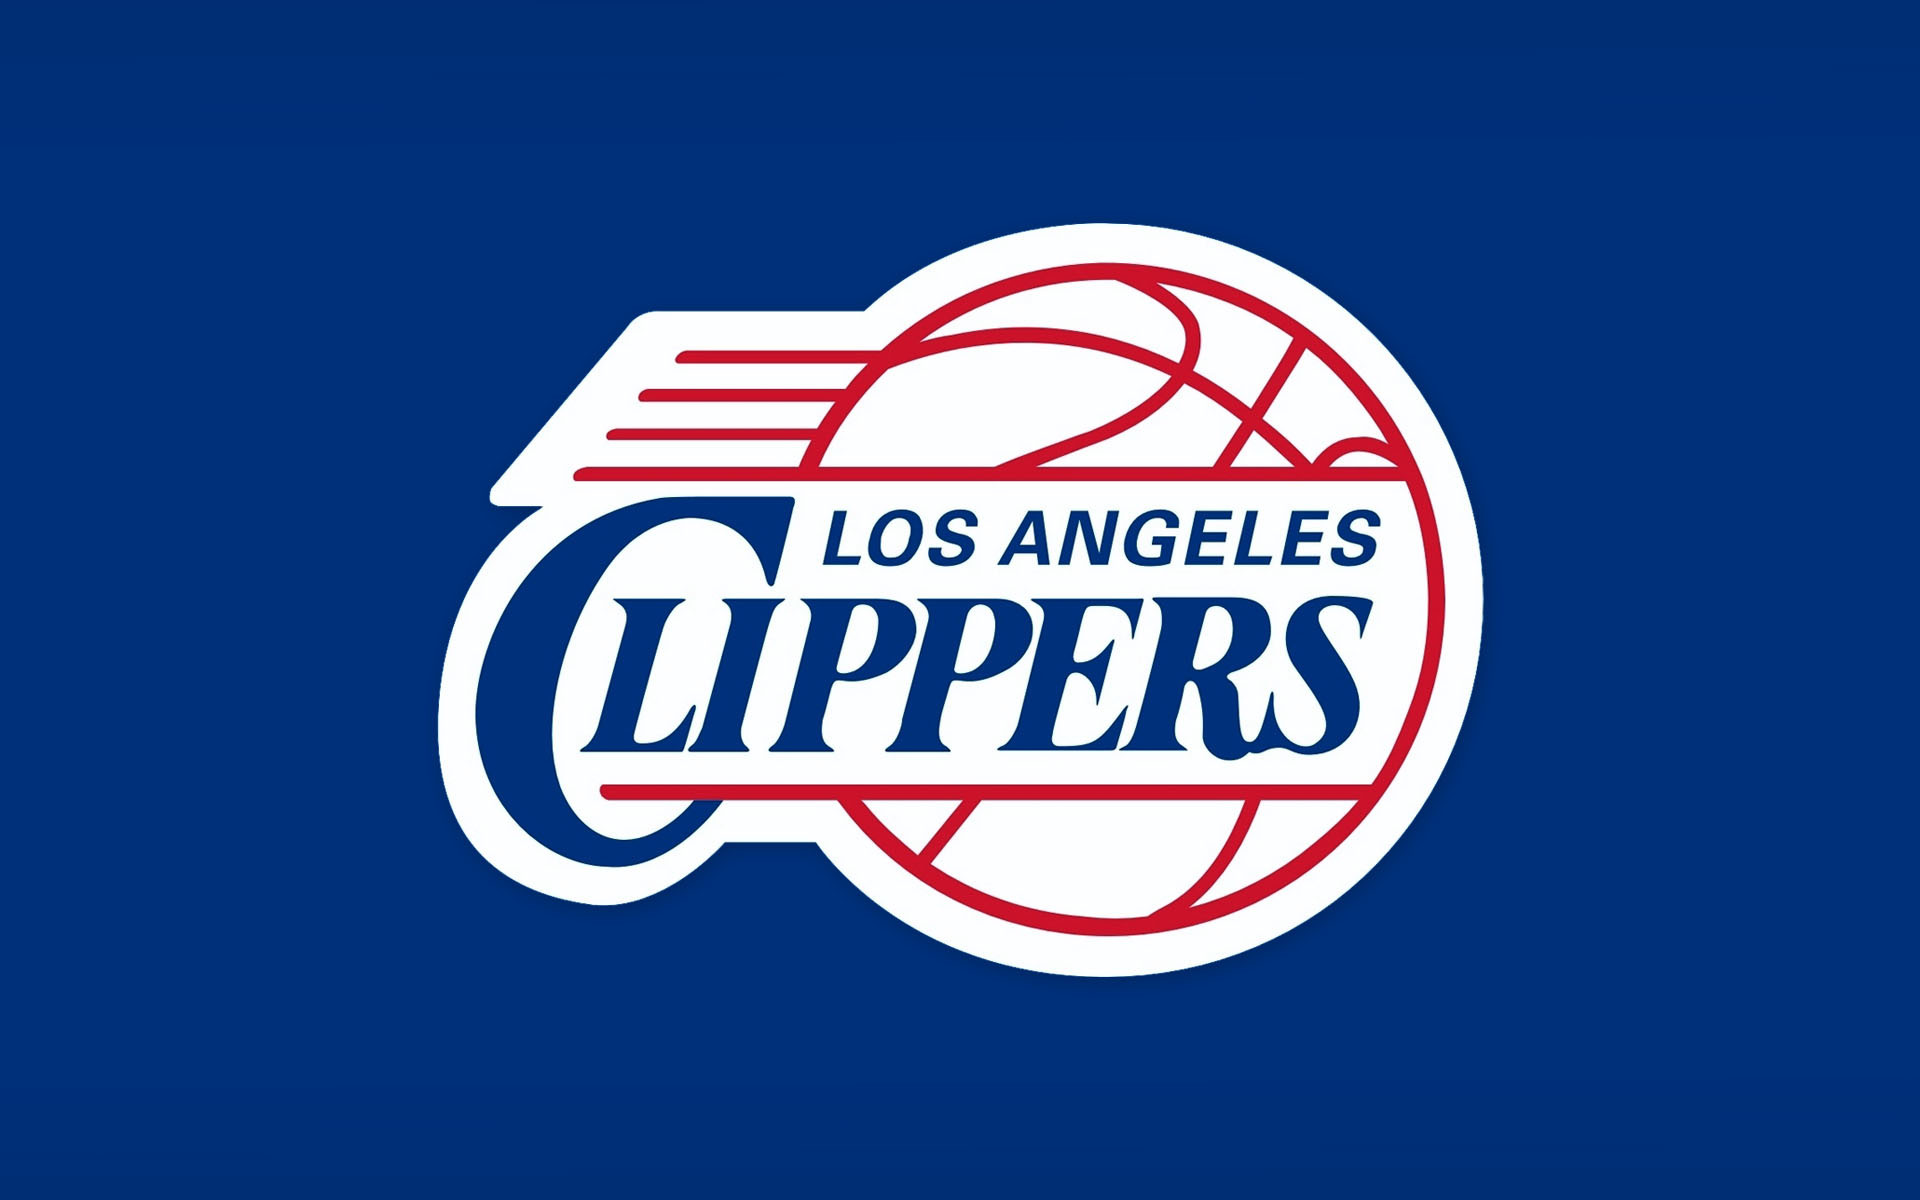 1920x1200 Losangeles Clippers Logo Wallpaper.